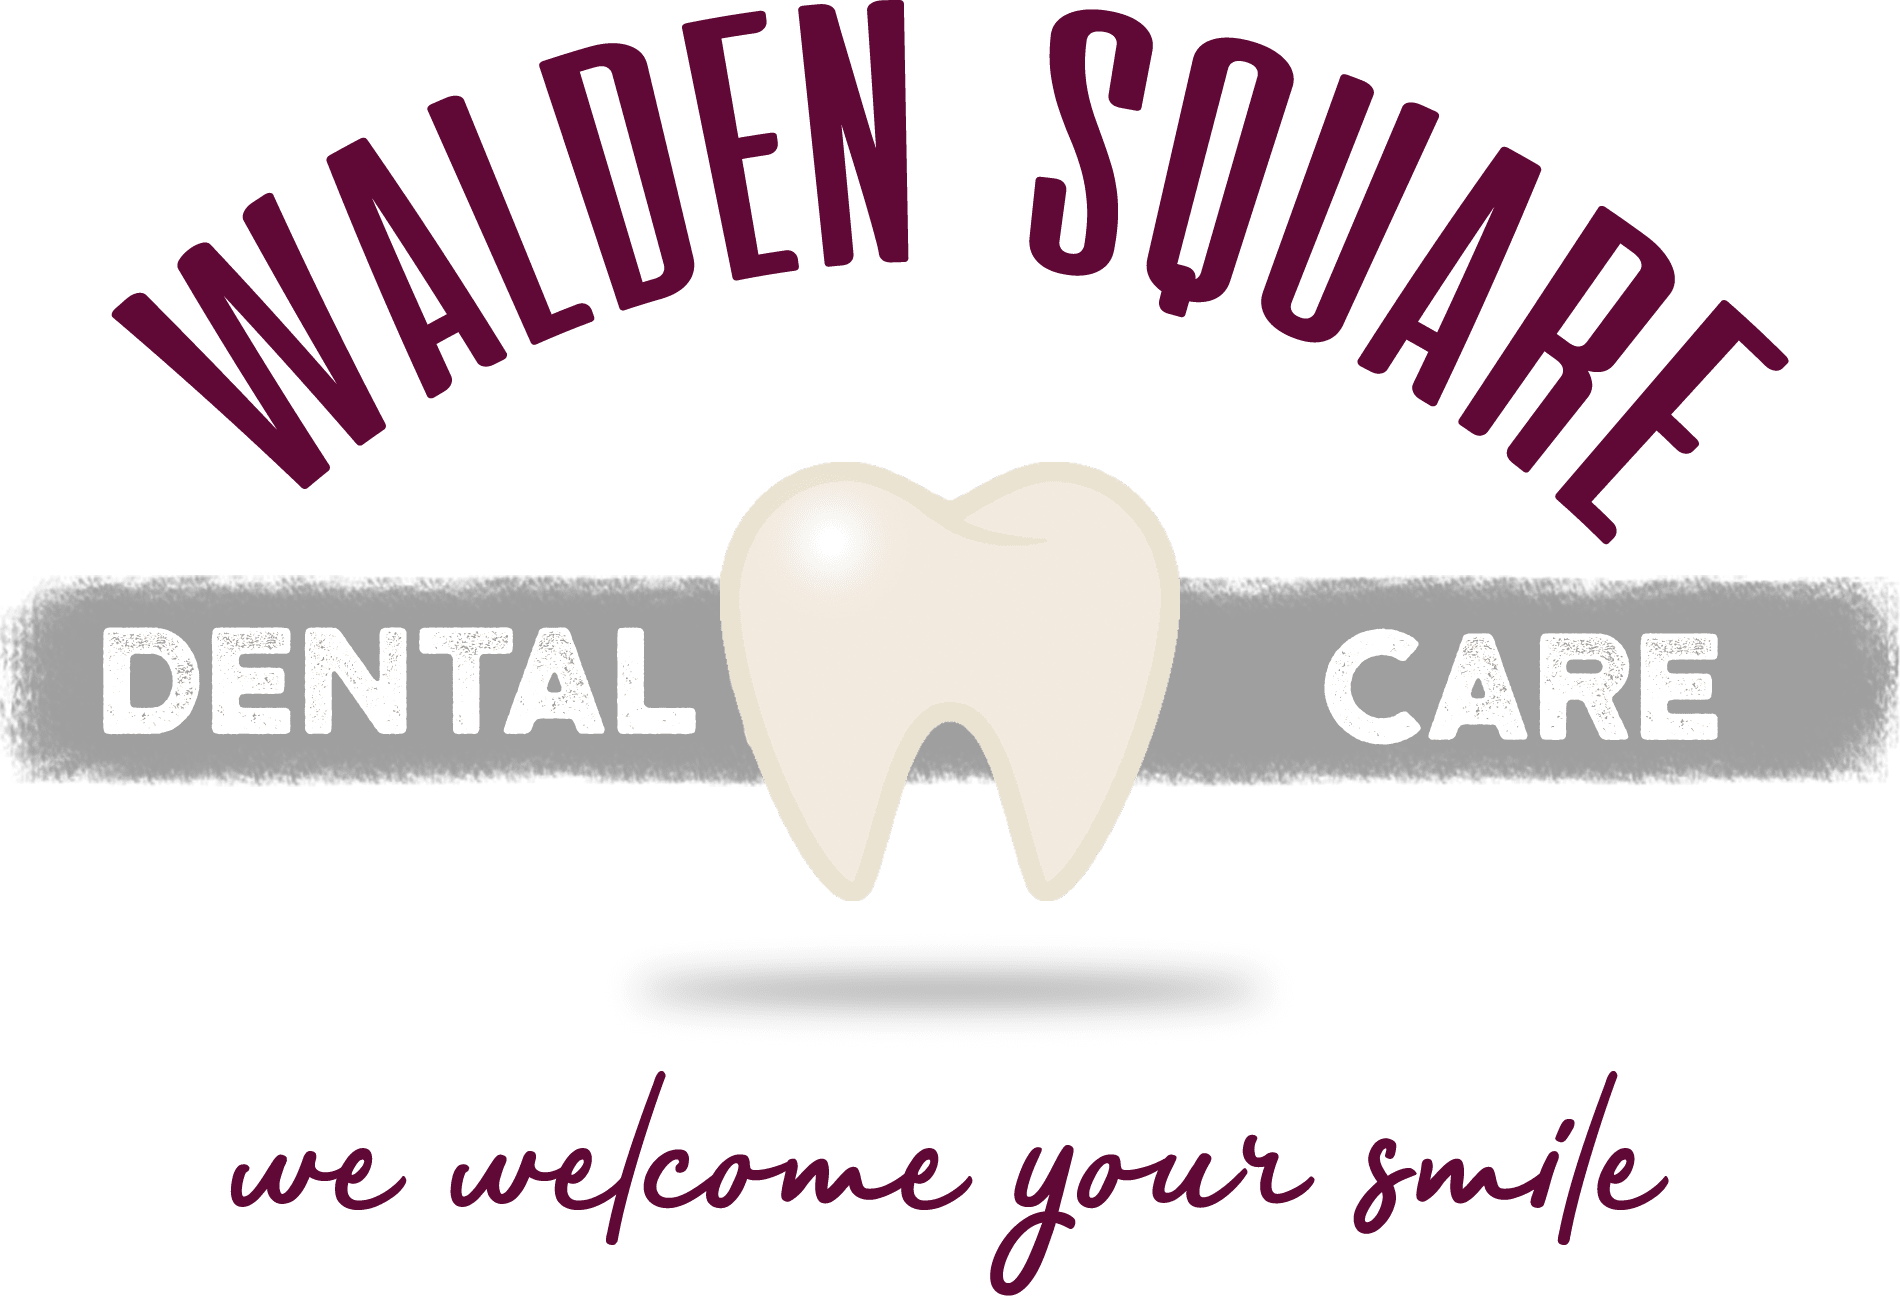 Walden Square Dental Care